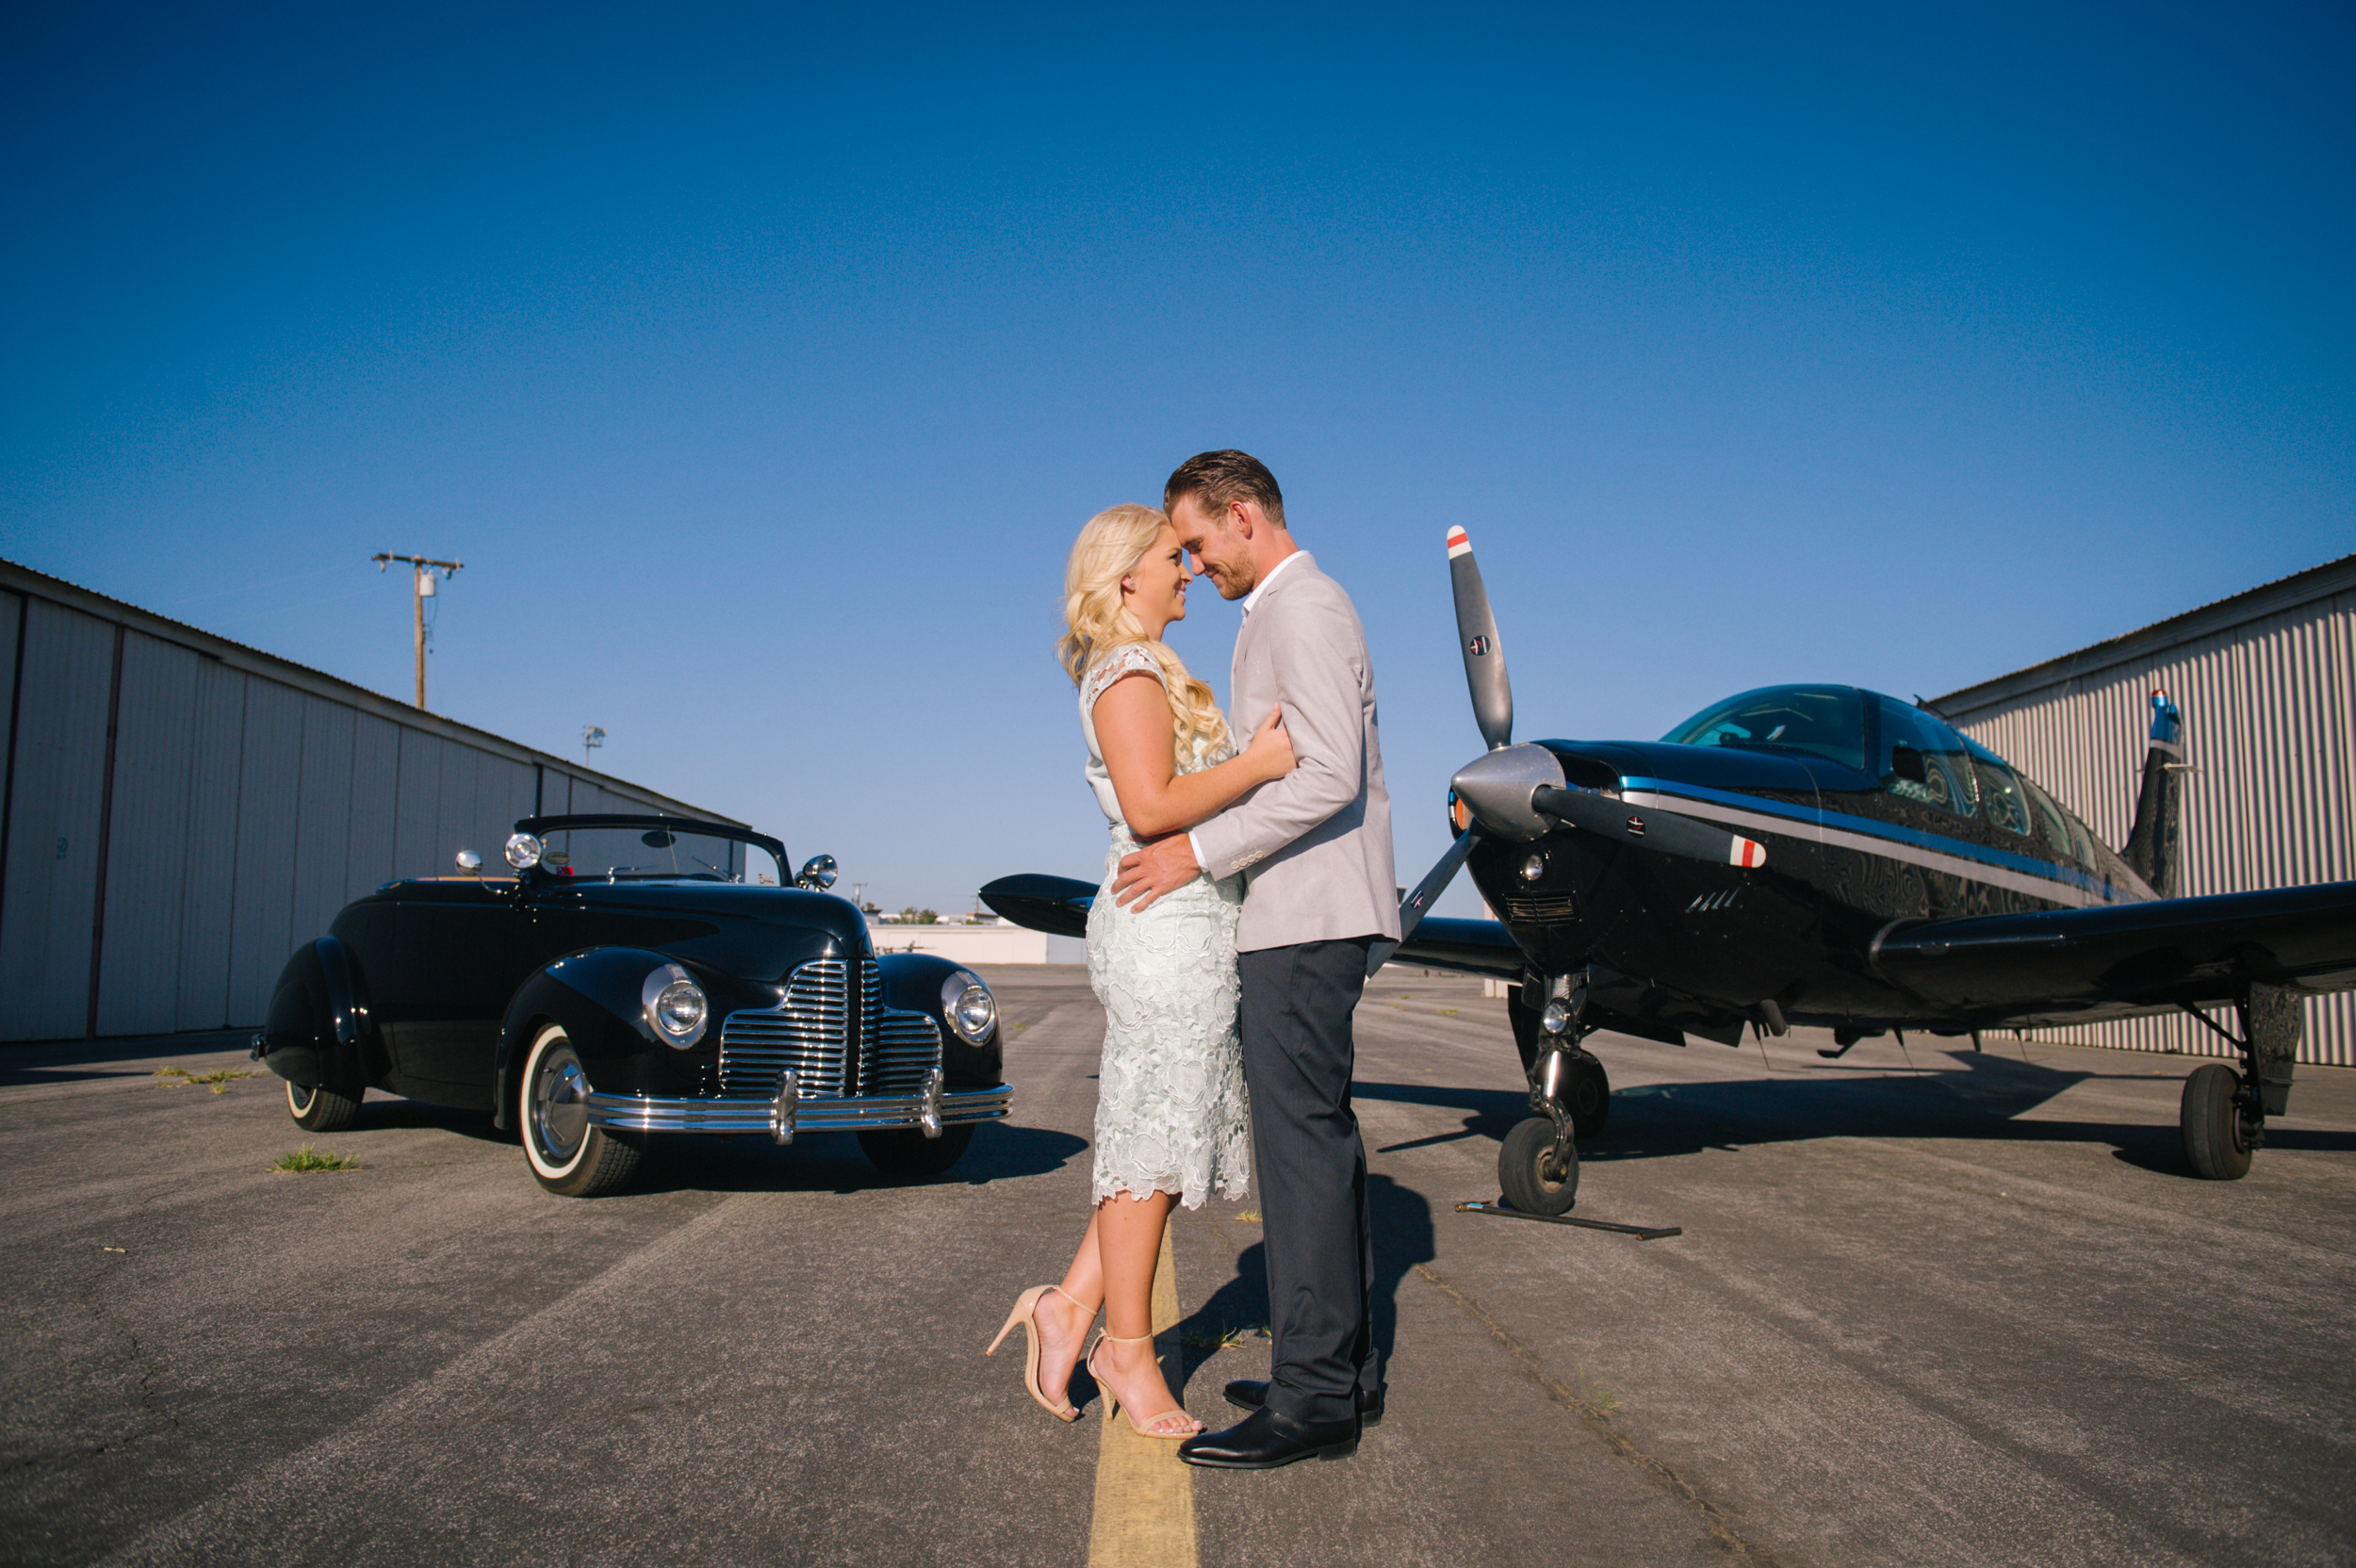 John-Wayne-Airport-Engagement-0212.JPG